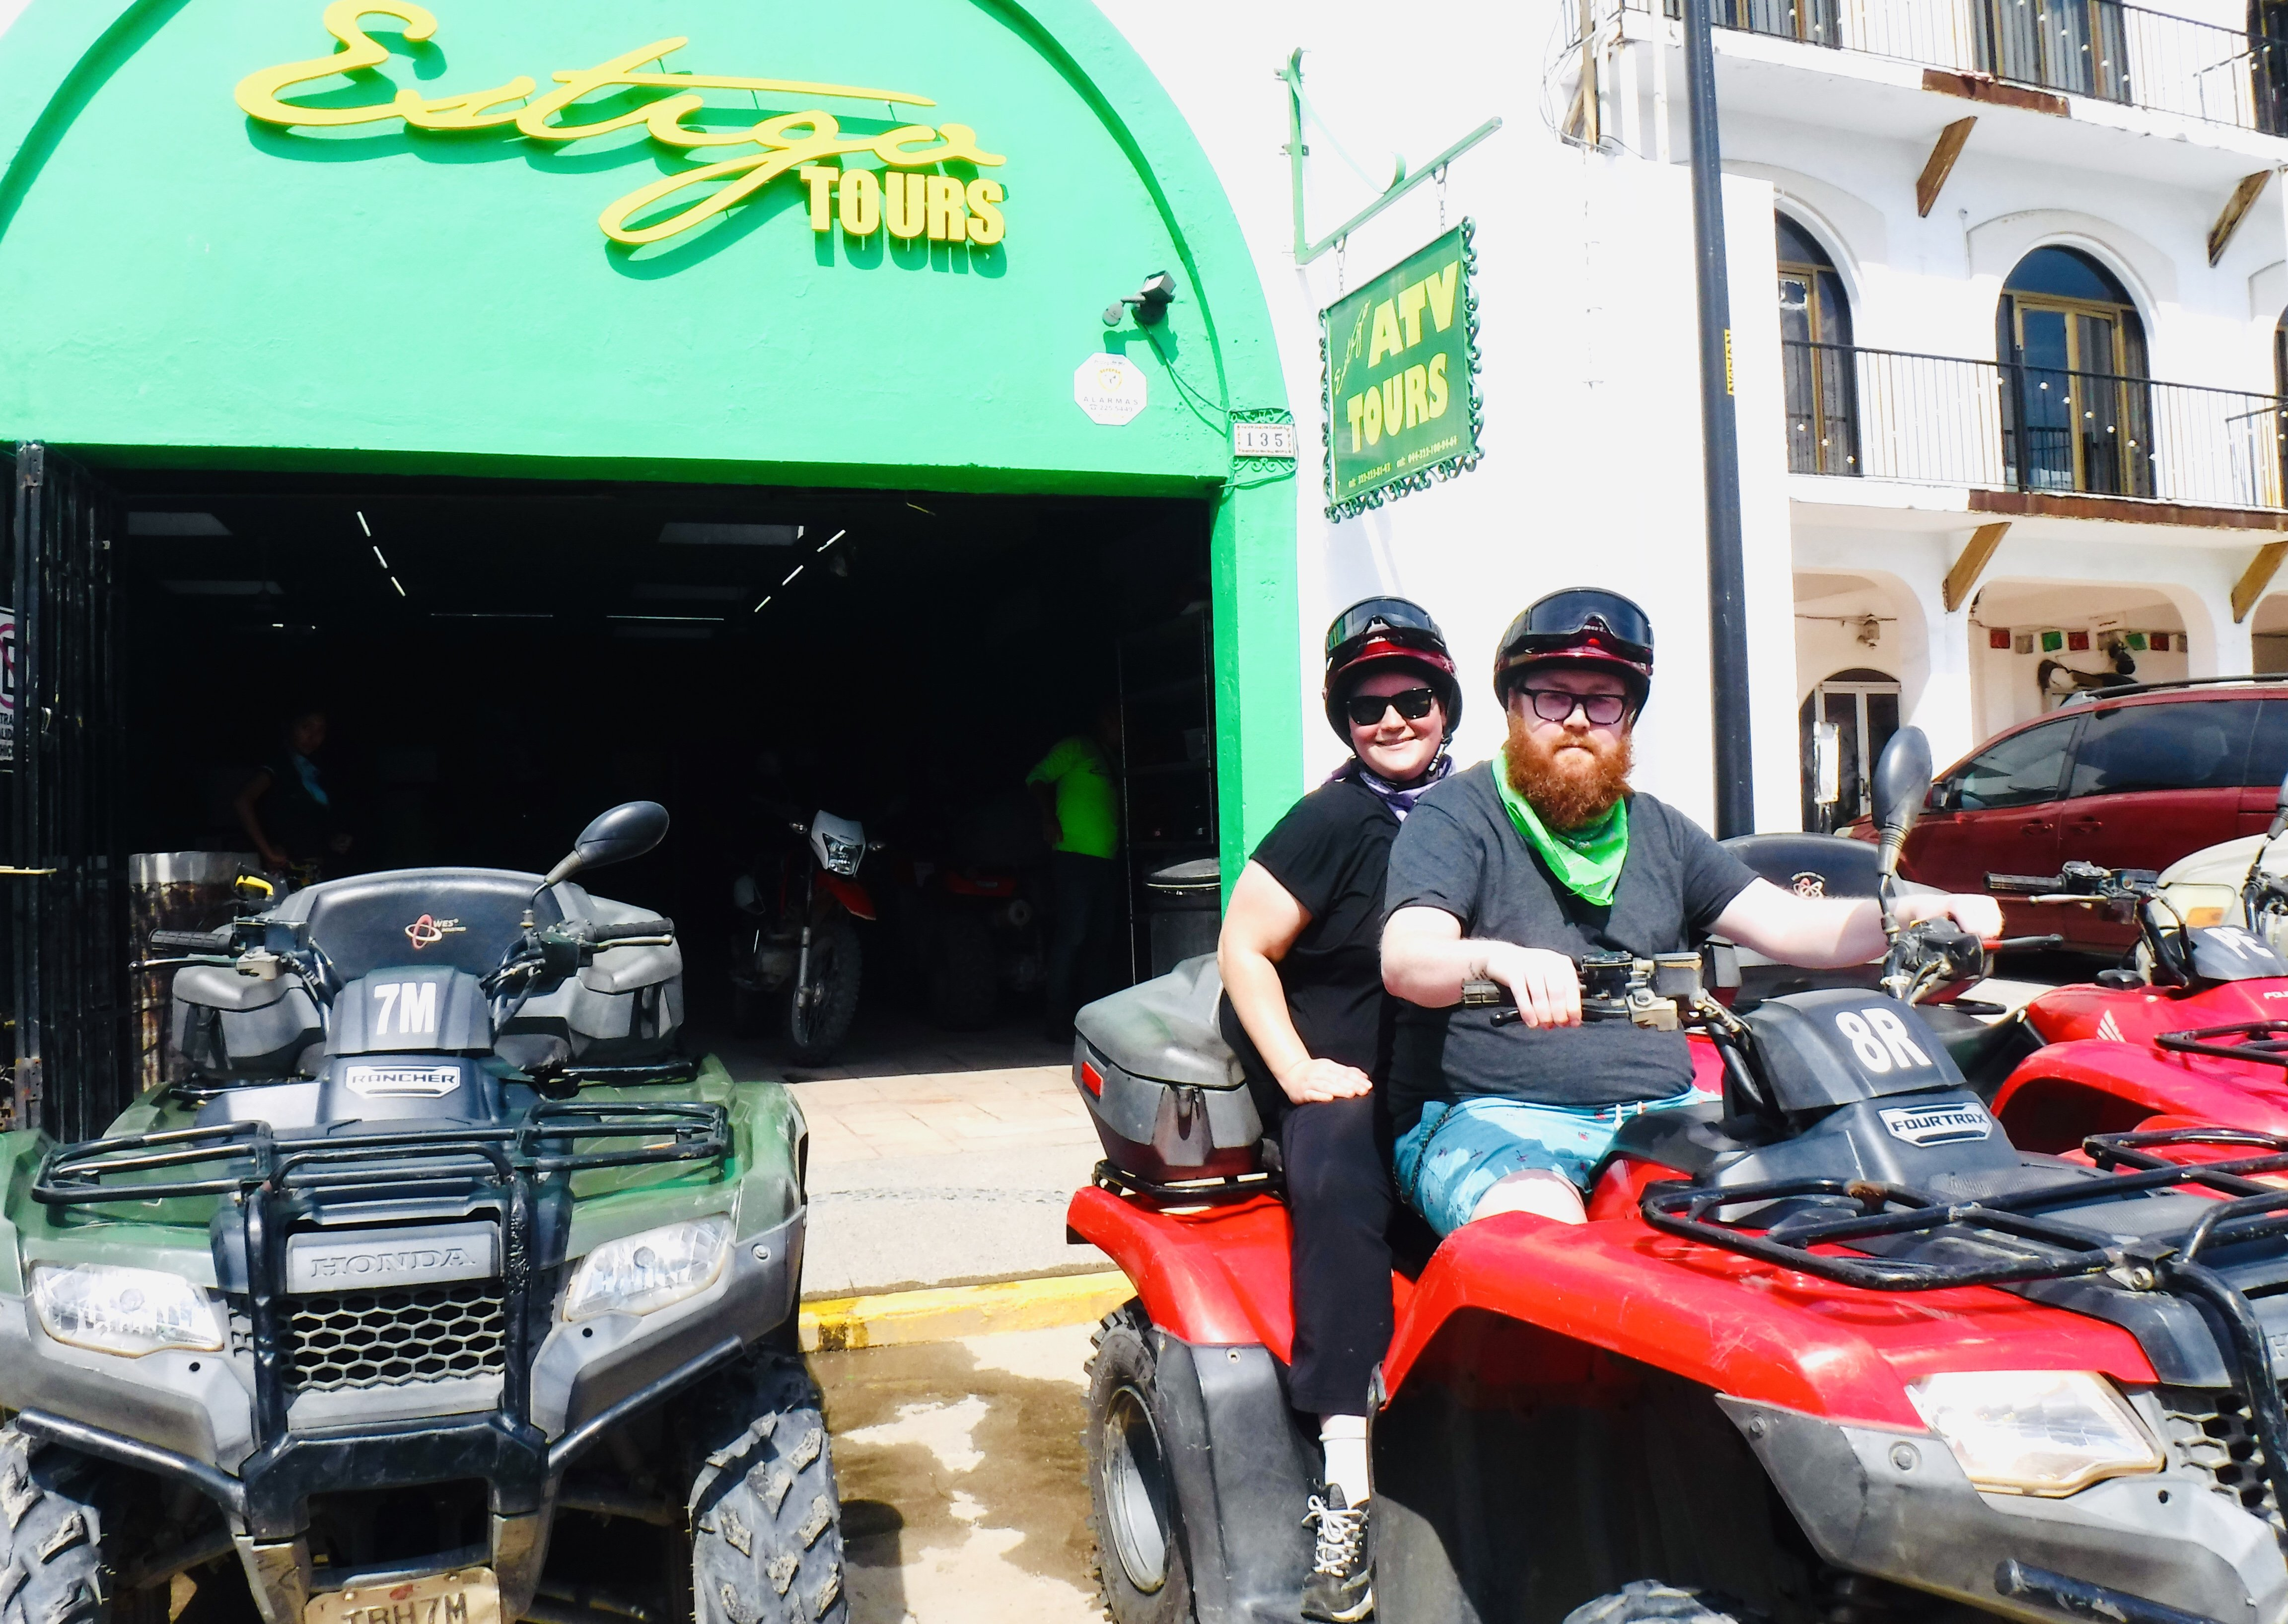 Scott and I sitting on an atv, in front of the Estigo Tours building